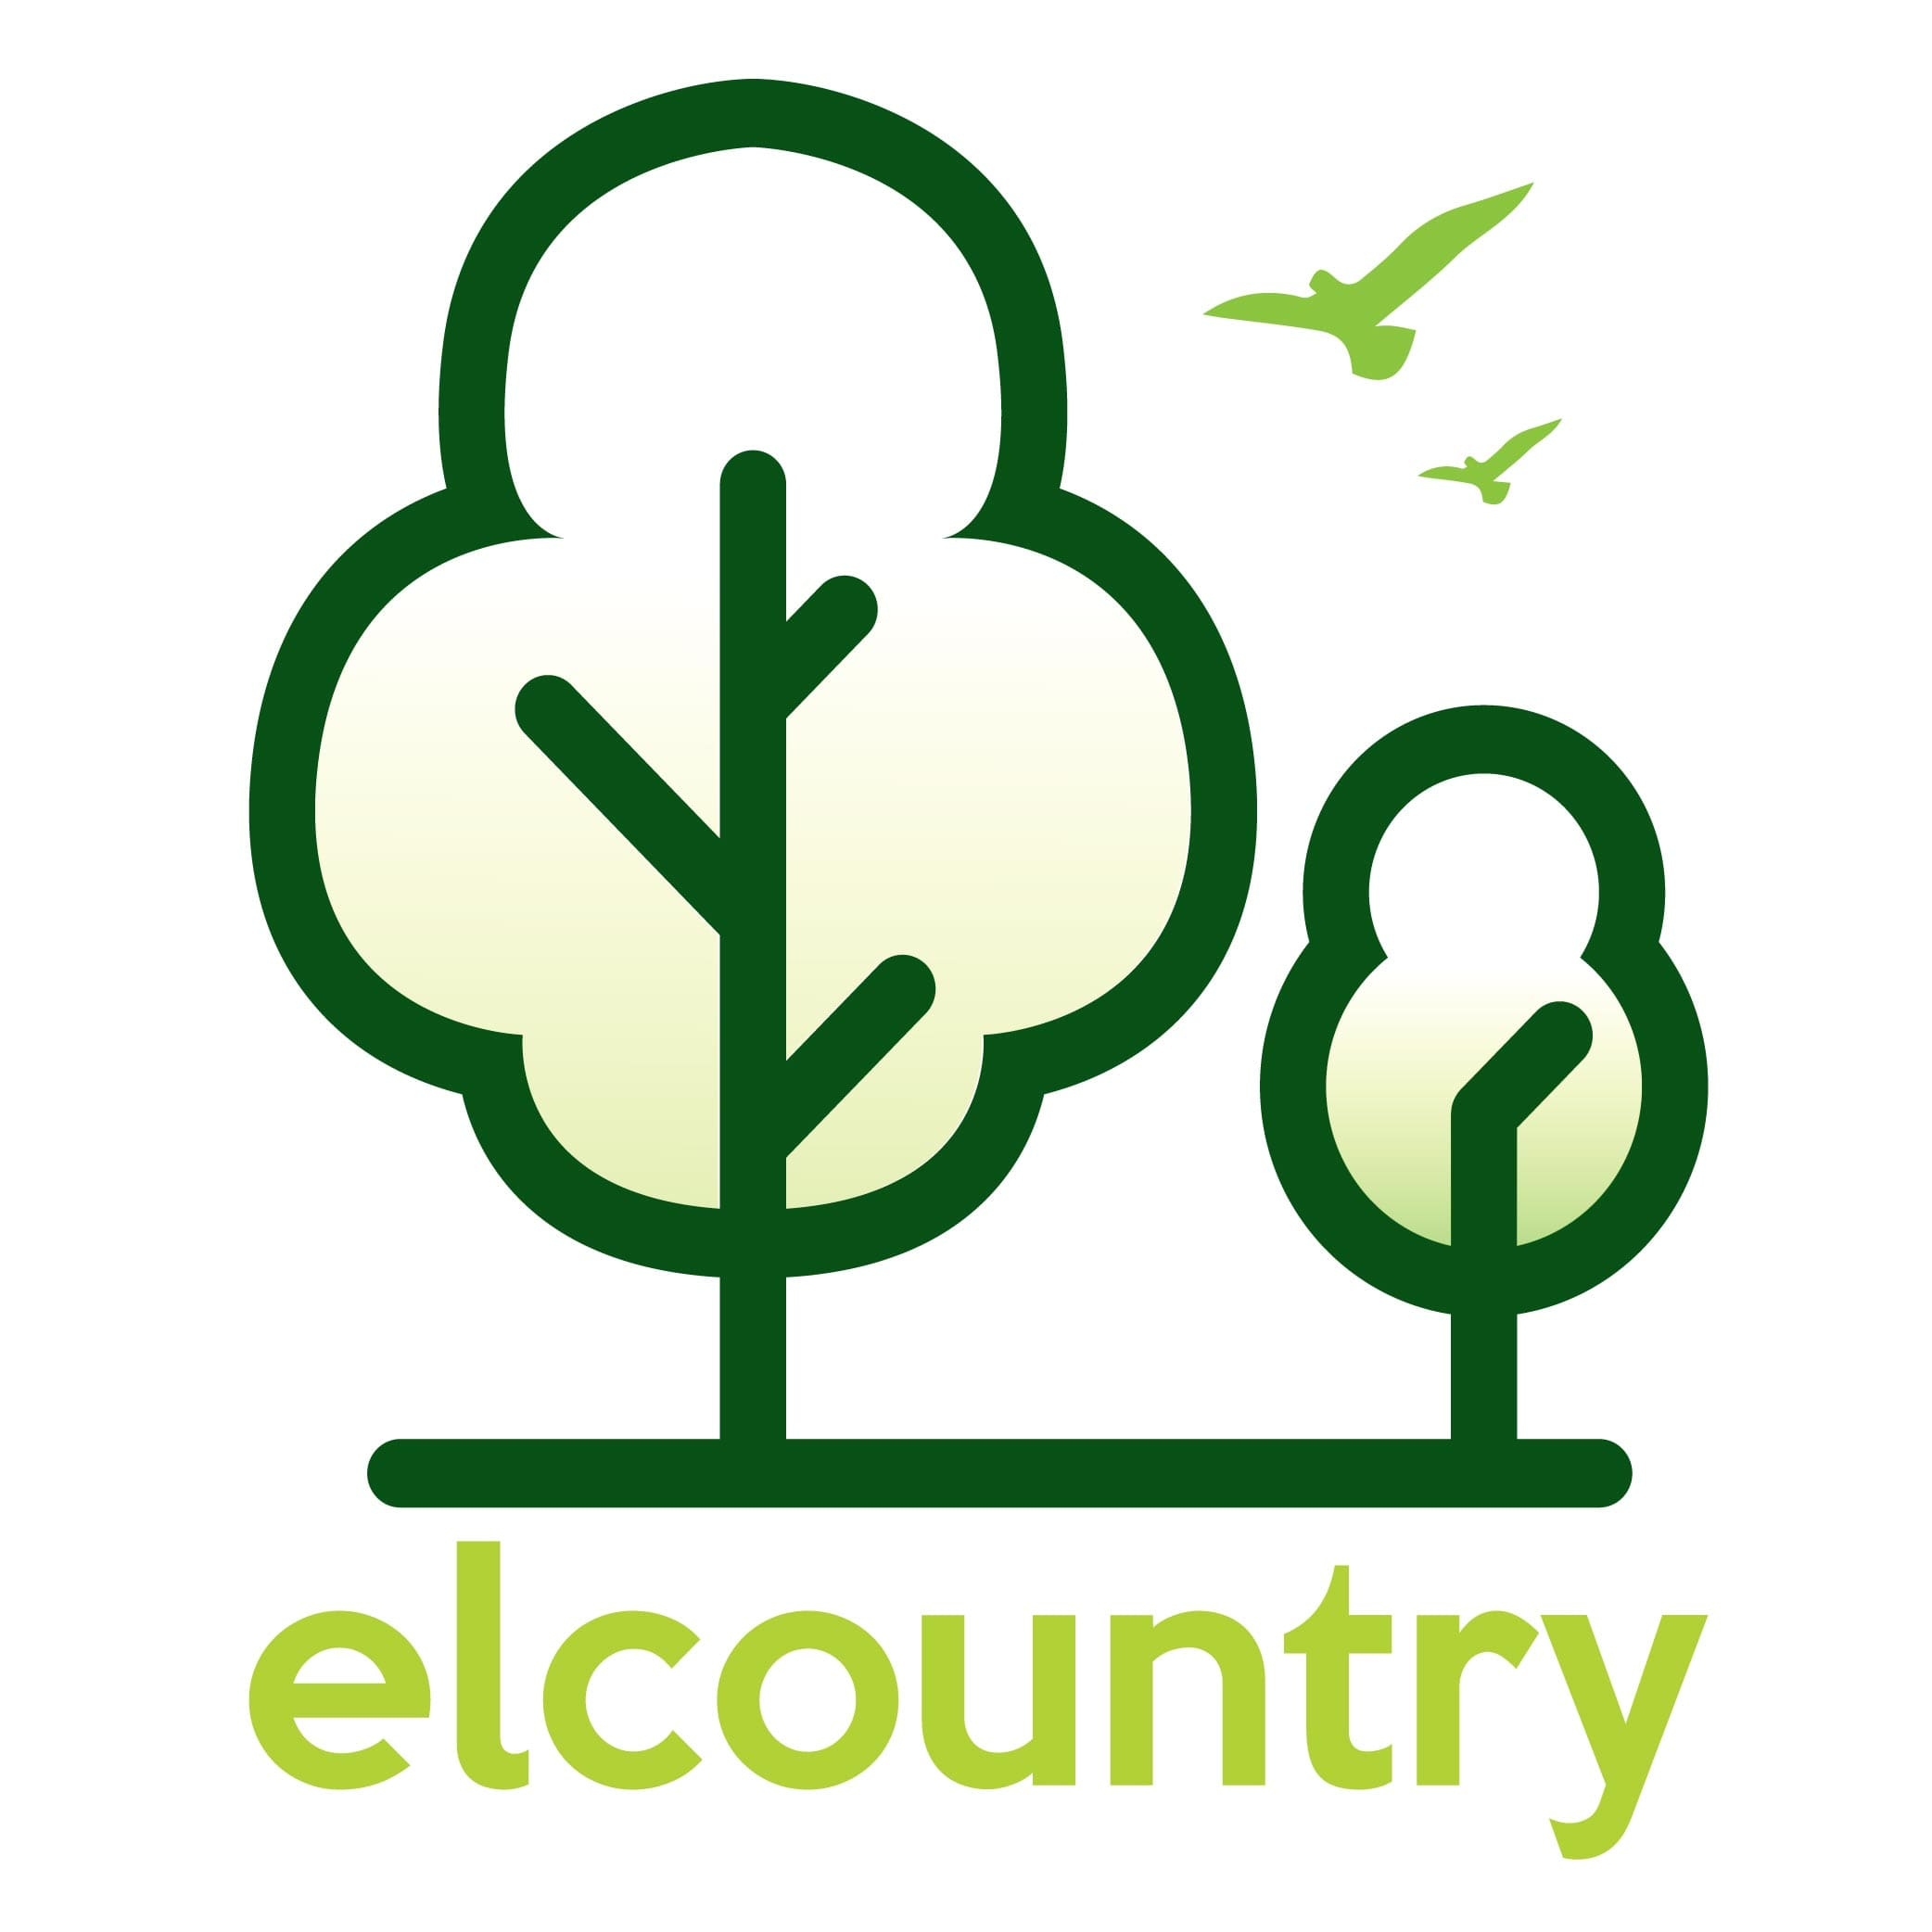 LOGO EL COUNTRY